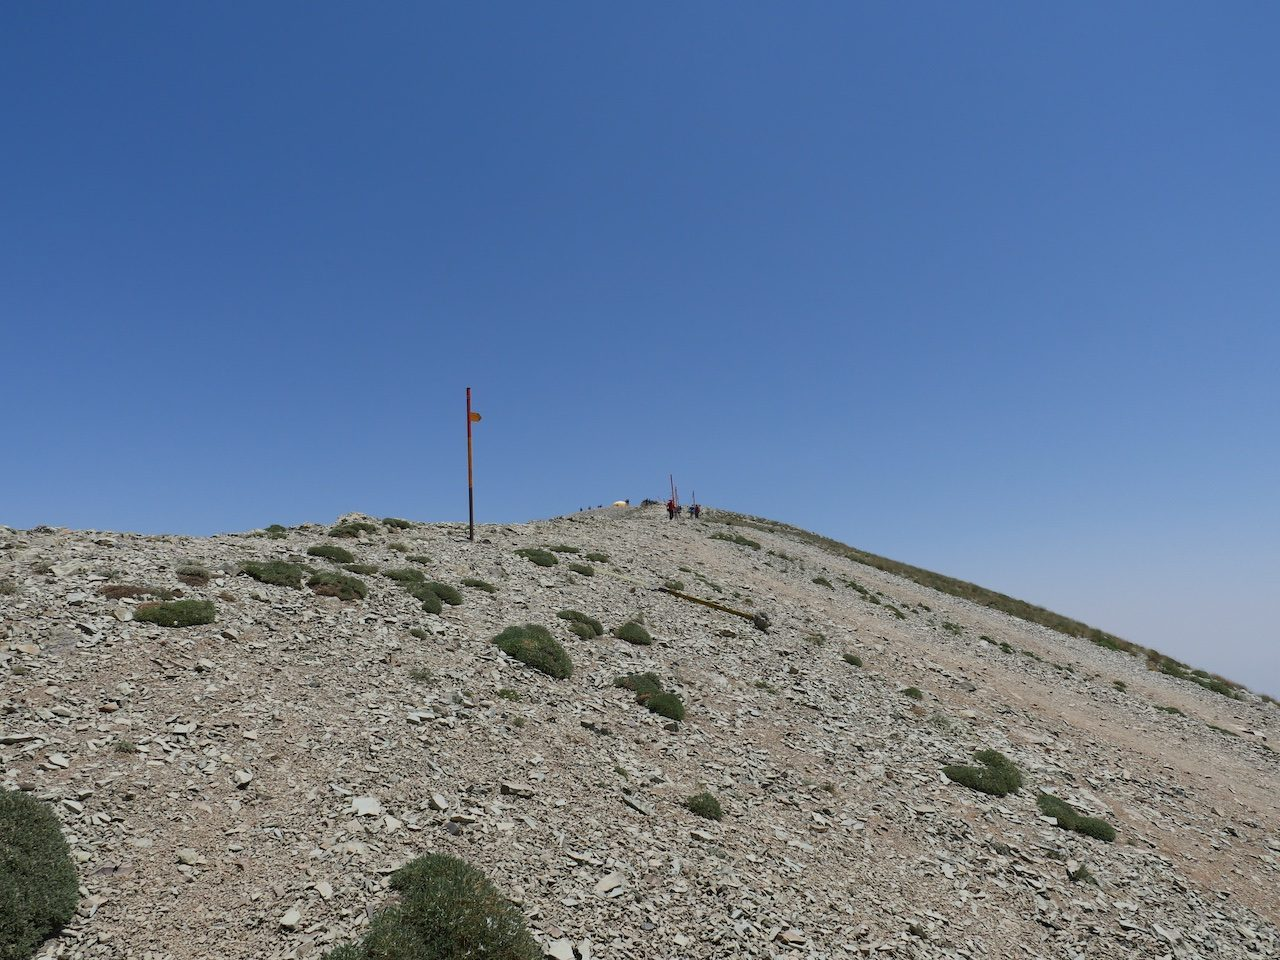 View towards the summit showing the patches of shrubbery